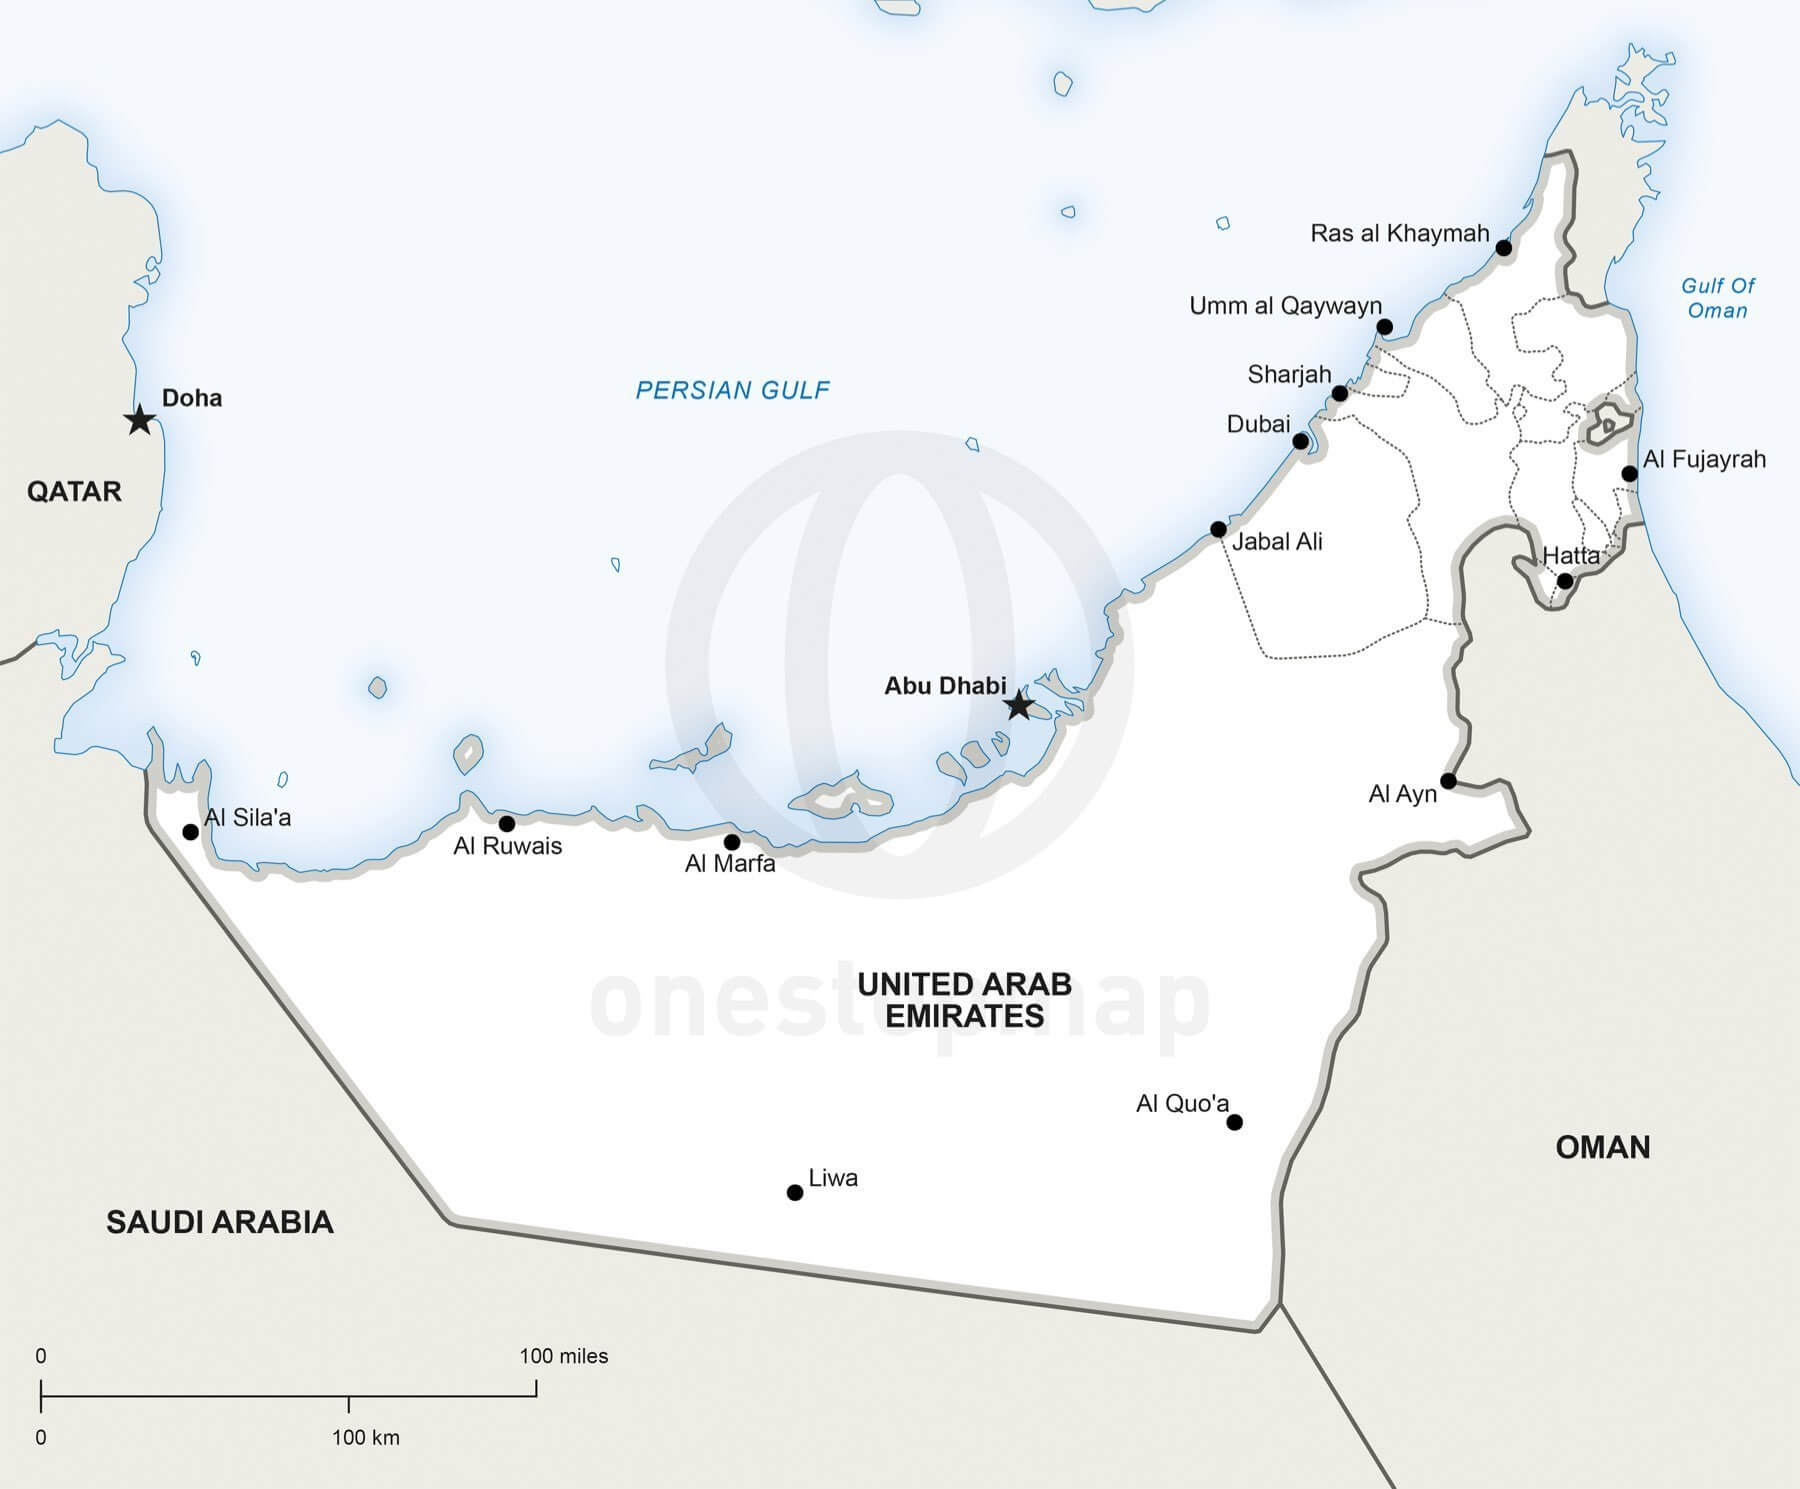 Vector Map Of United Arab Emirates Political One Stop Map - United arab emirates map